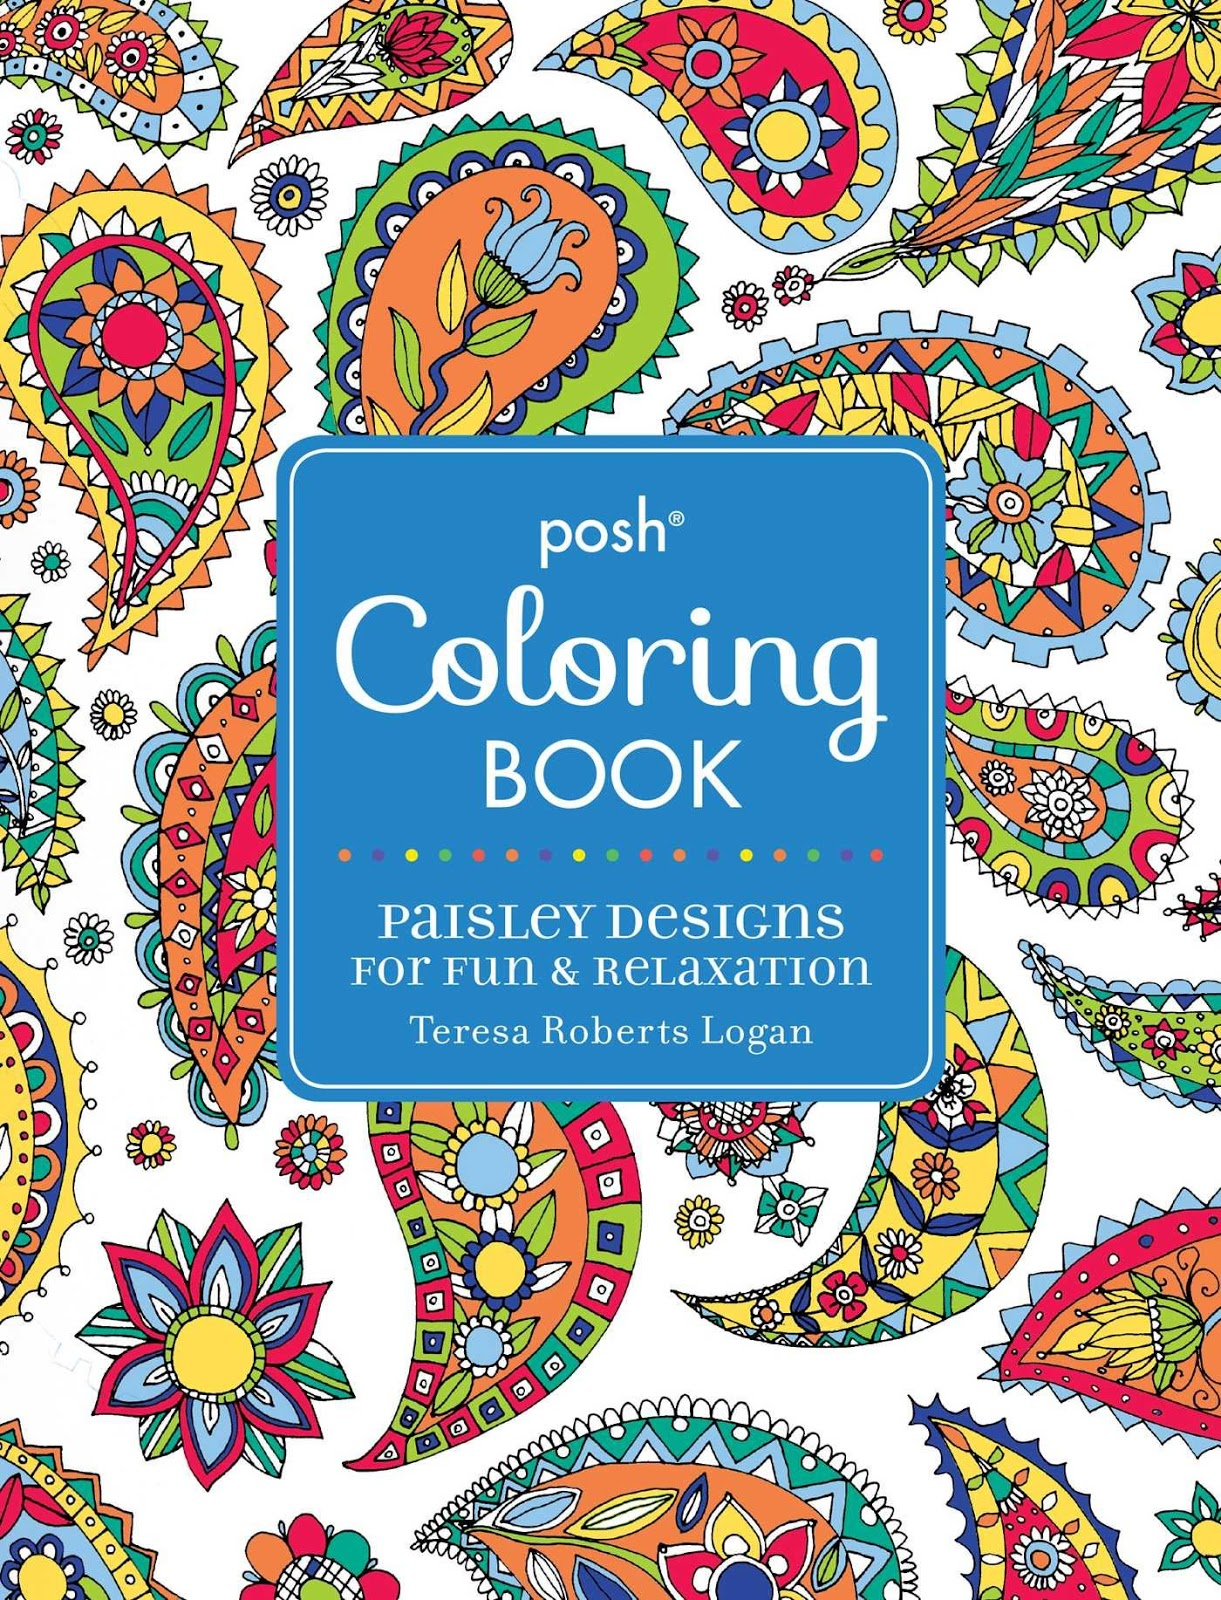 We Did Receive Two New Coloring Books Yesterday Posh Adult Happy Doodles For Fun Relaxation 9781449475581 1299 And Paisley Designs